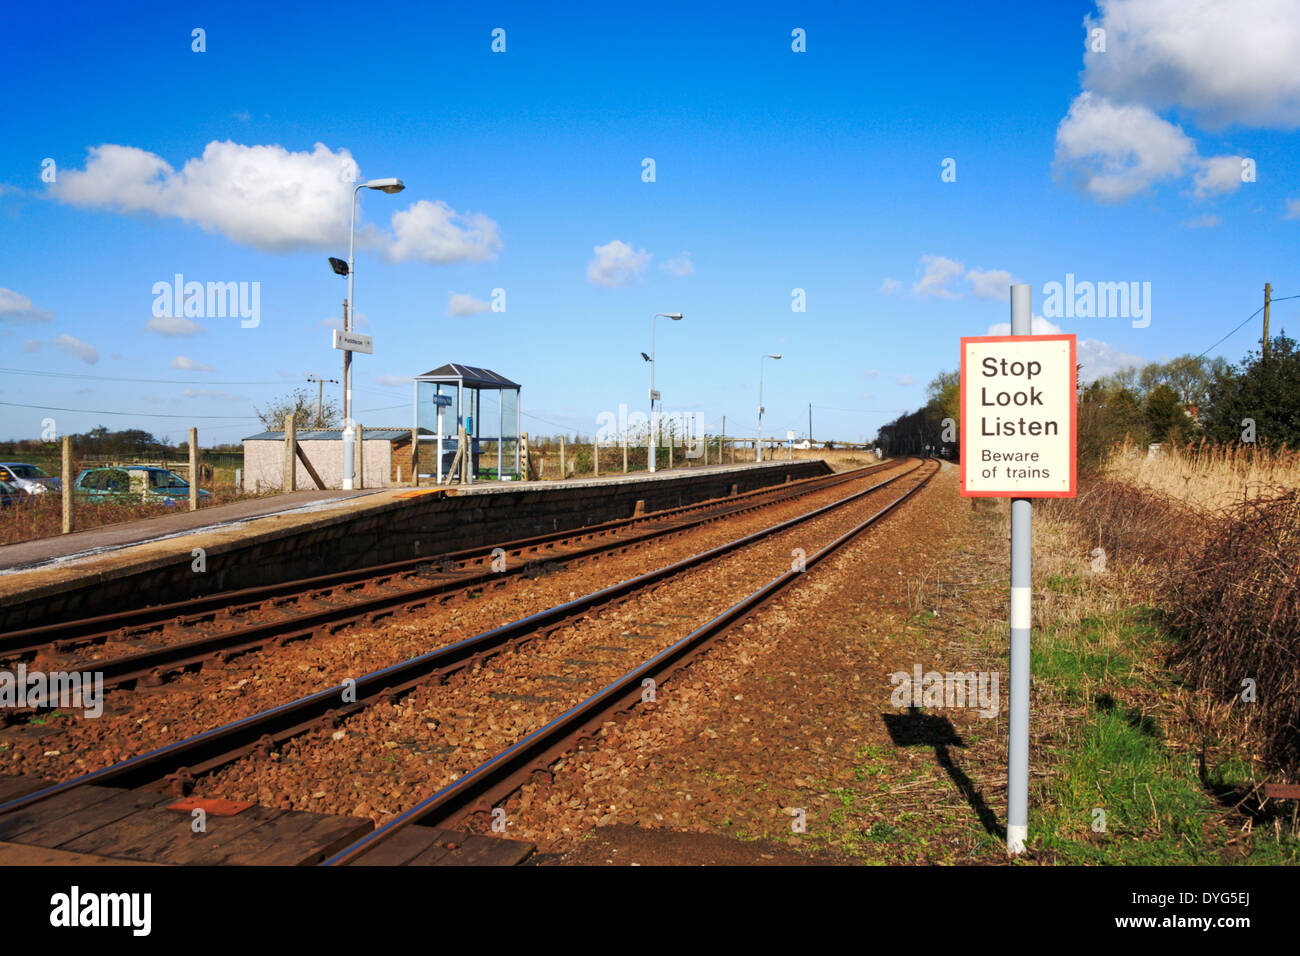 A view of the railway lines a platform at Haddiscoe station, Norfolk, England, United Kingdom. - Stock Image